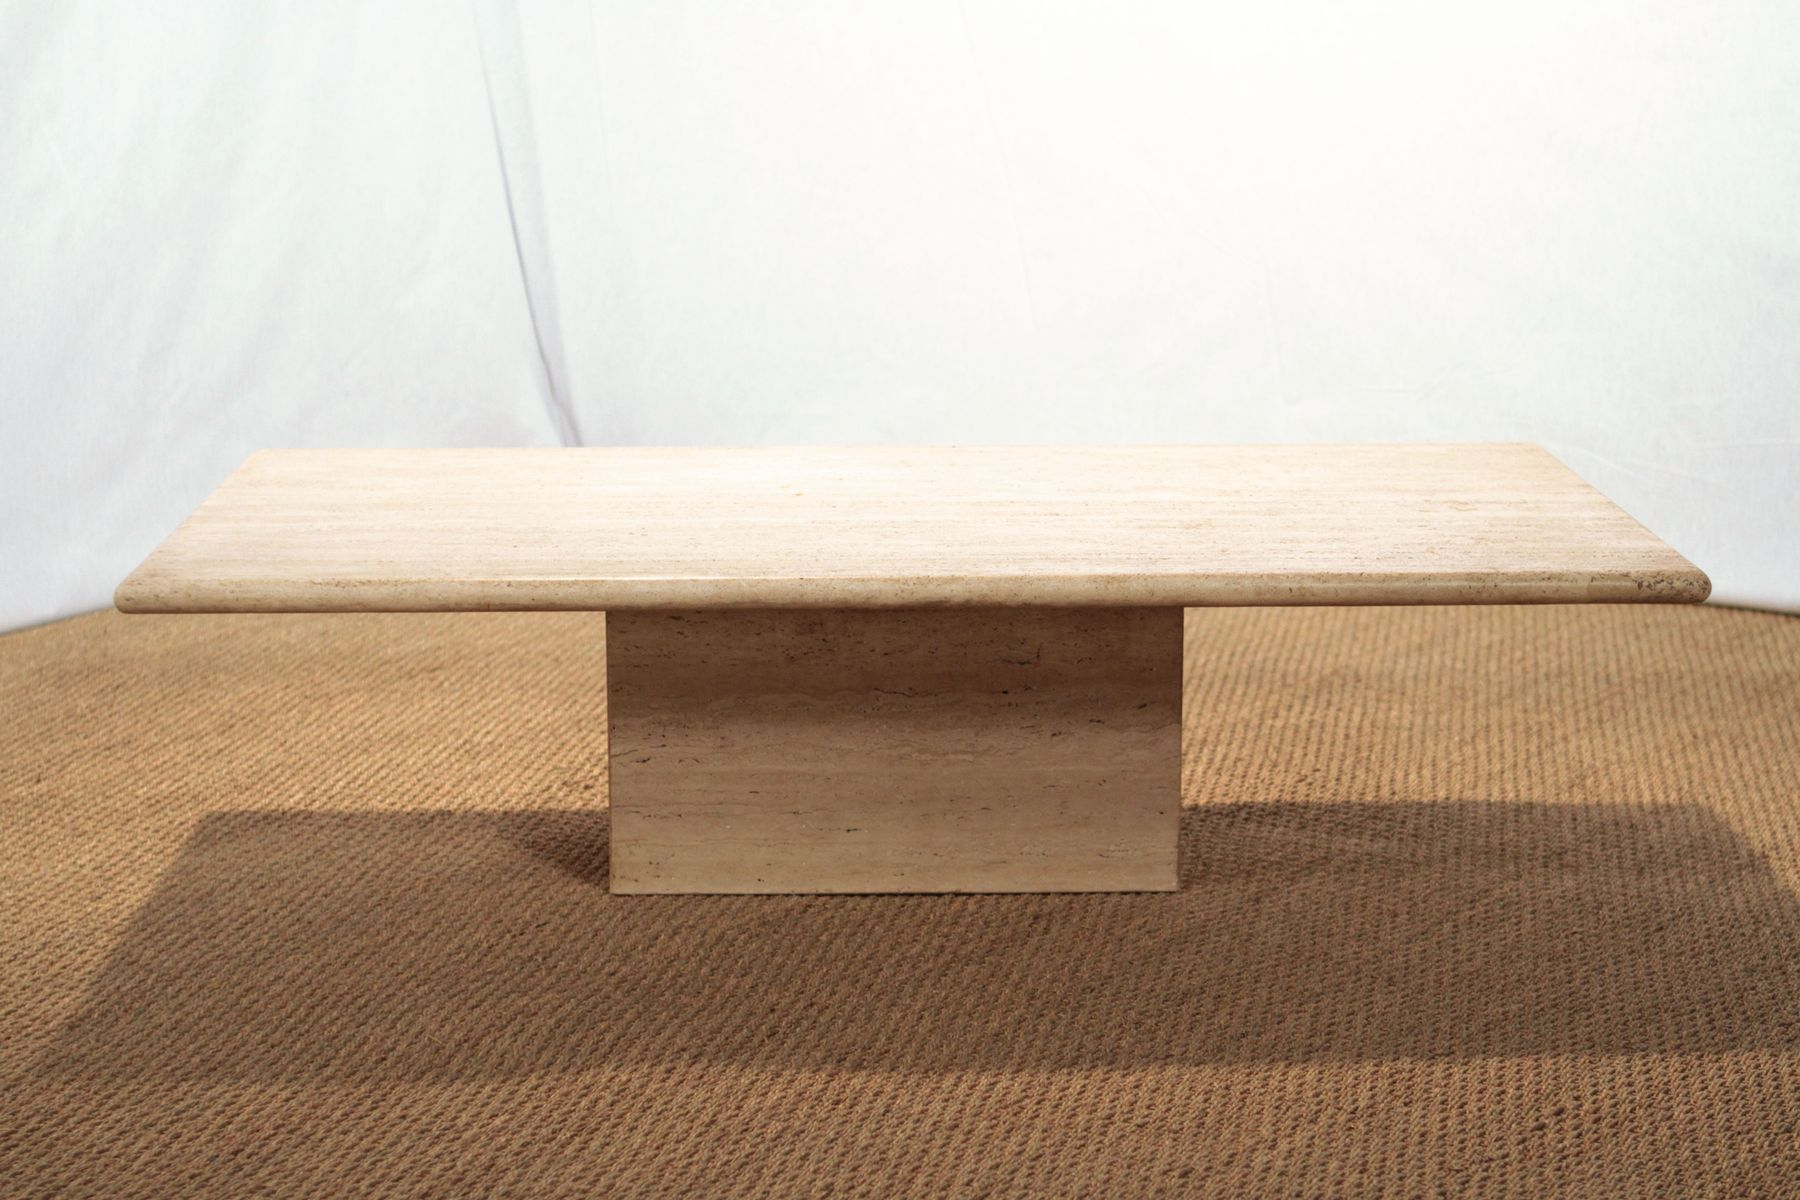 Vintage Travertine Coffee Table For Sale At Pamono - Travertine coffee table